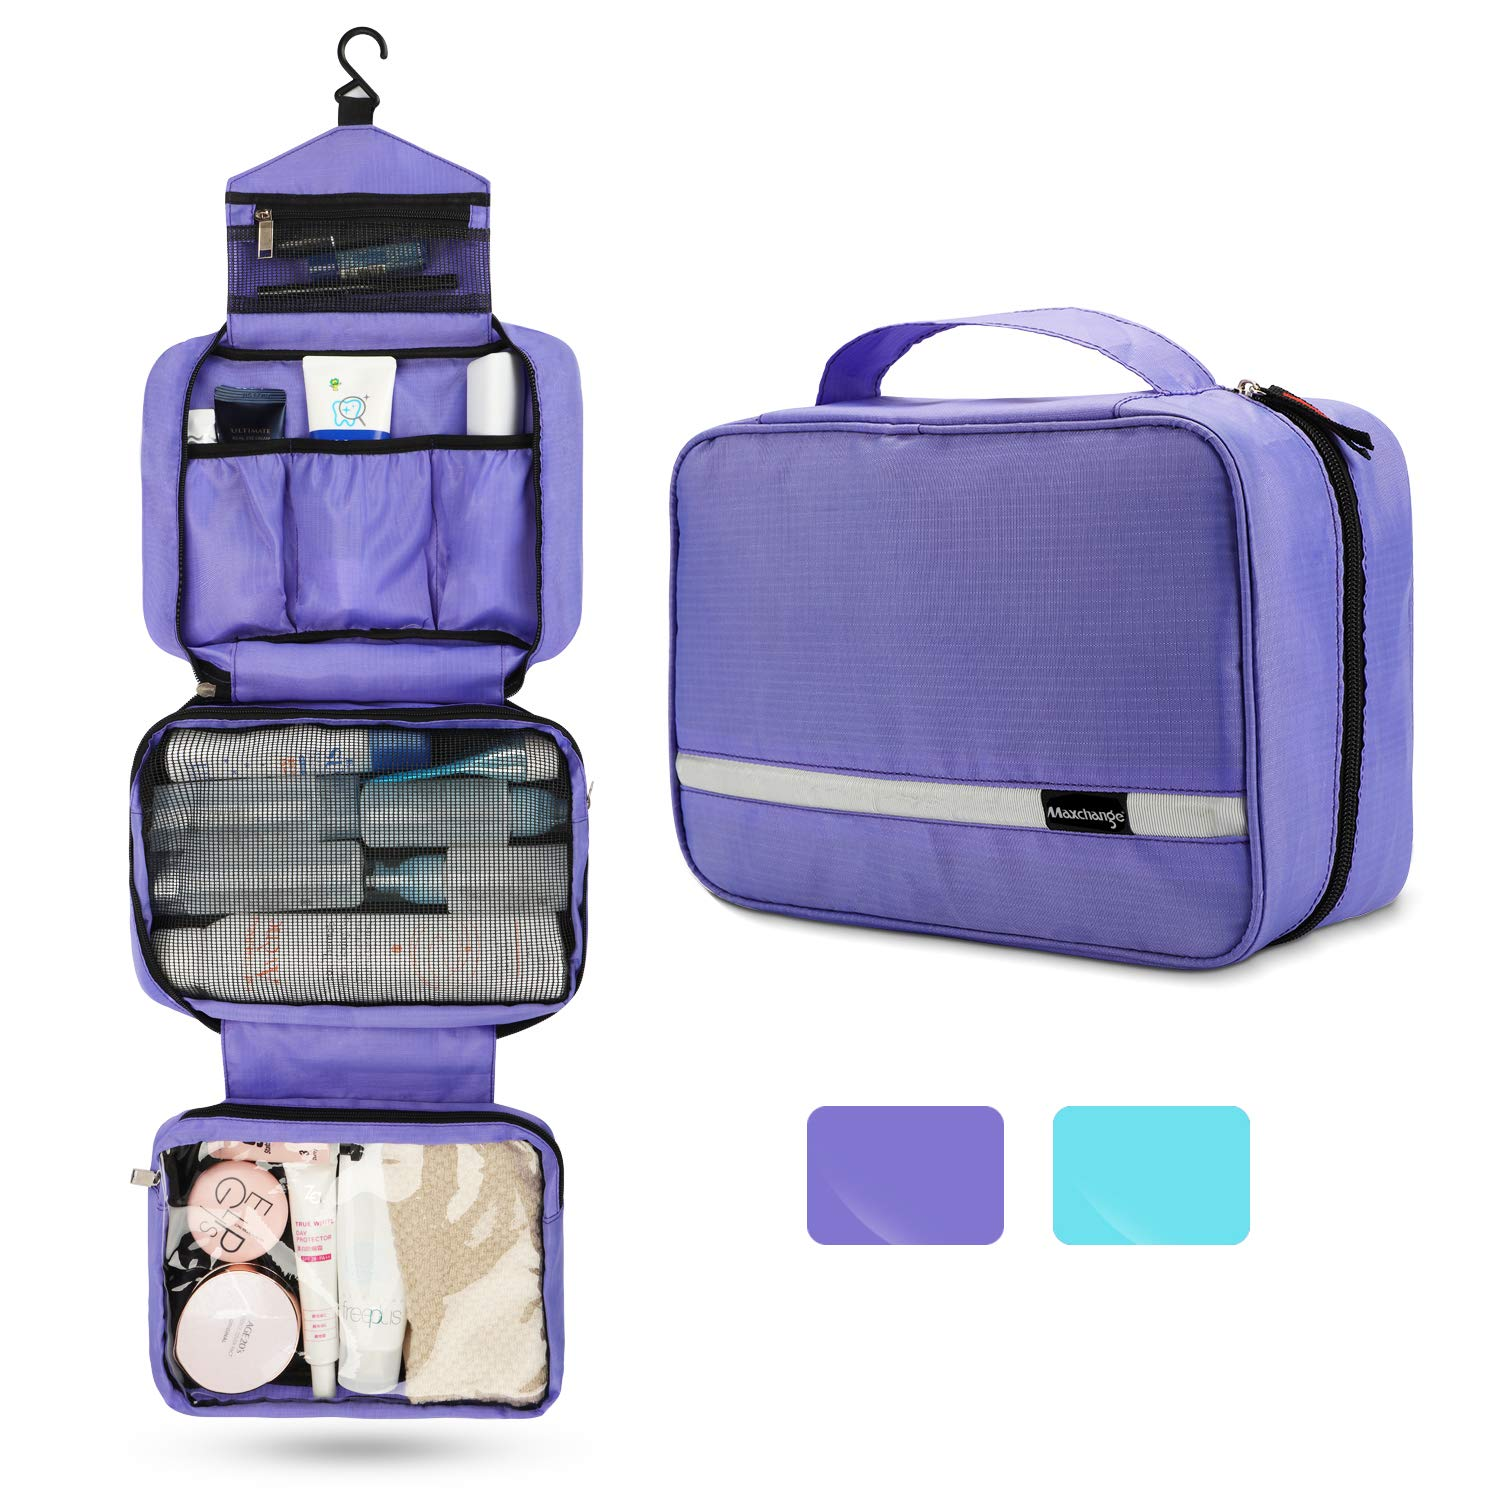 Travel Toiletry Bag for Women, Maxchange Hanging Toiletry Bag with 4 Compartments, Portable and Waterproof Compact travel Bathroom Organizer,Ideal for Travel or Daily Life. Purple